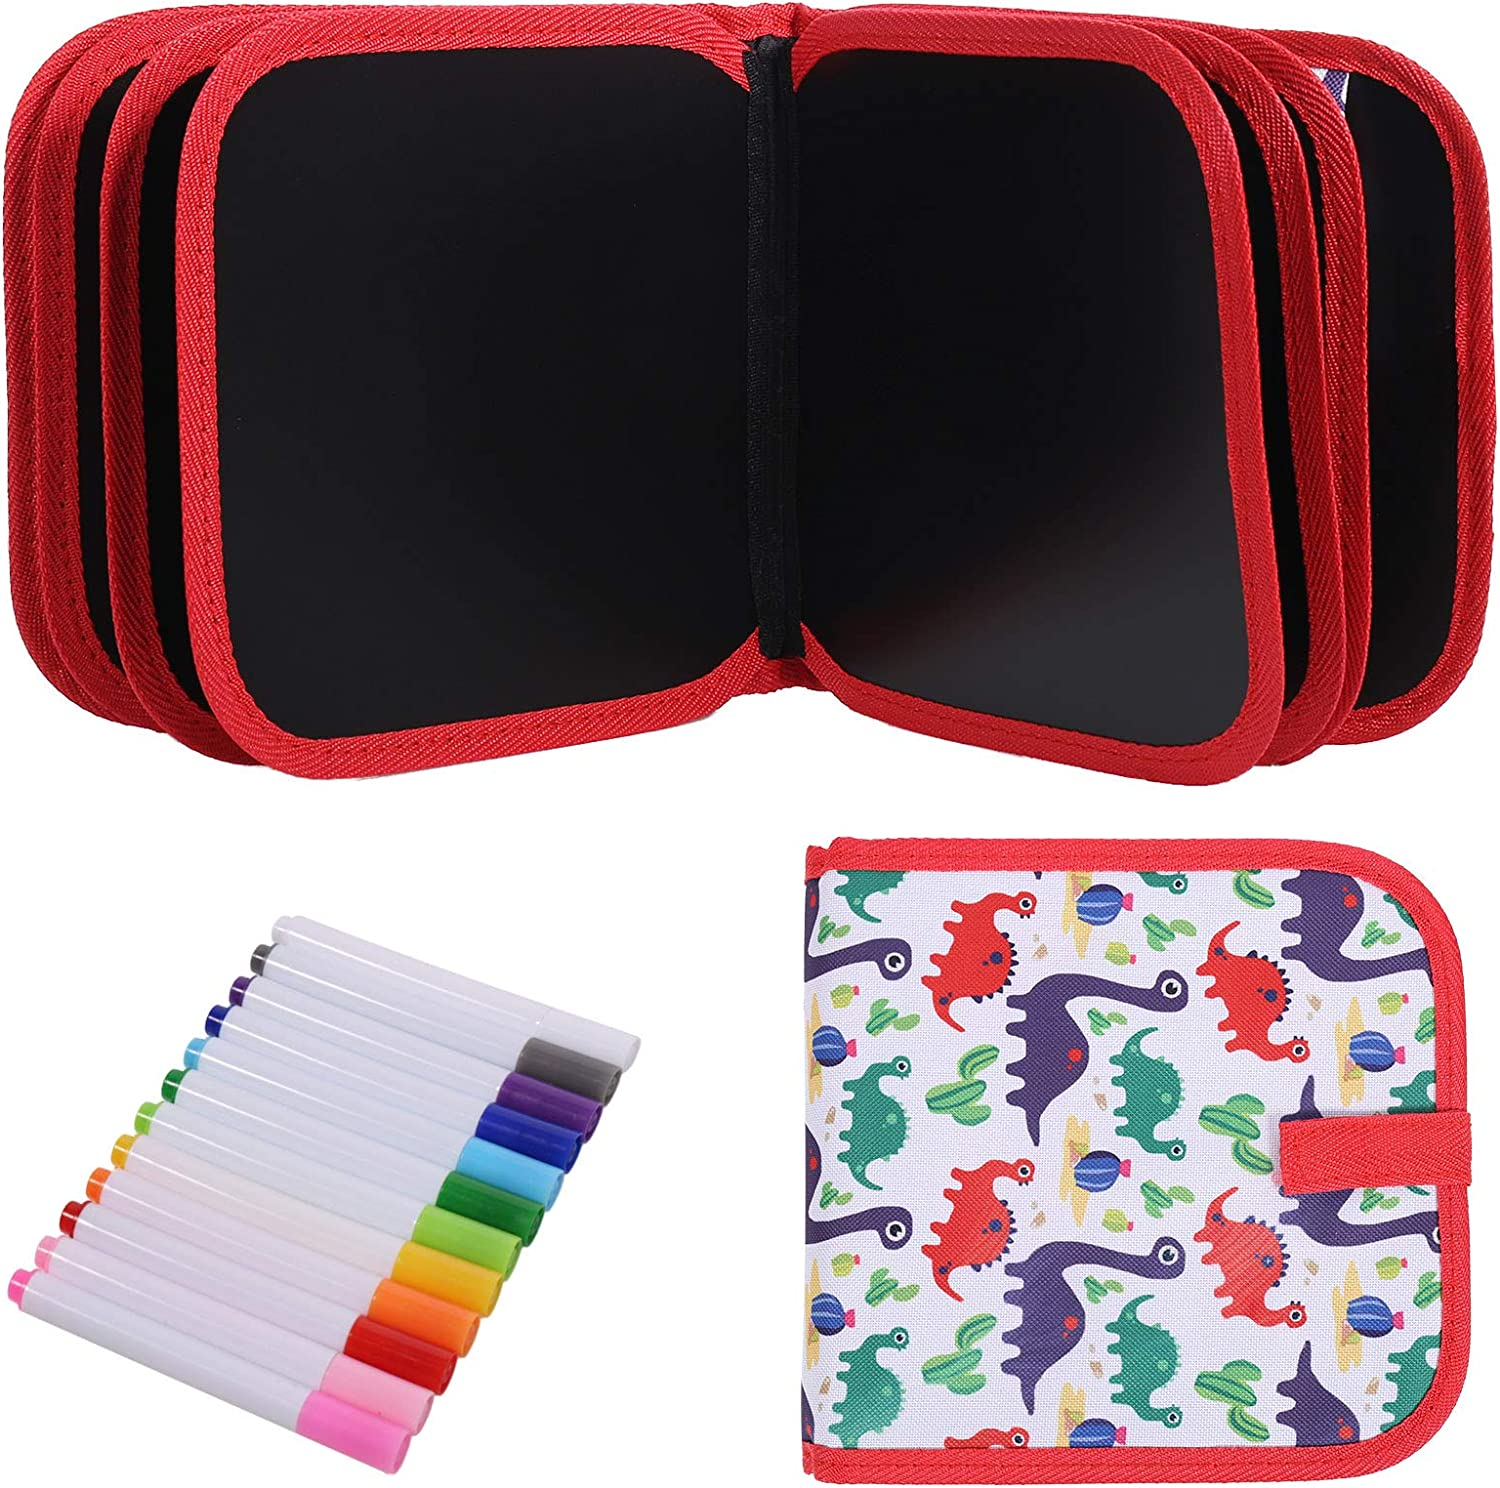 Aoliandatong Erasable Doodle Book Graffiti Blackboard Book Learning Toy for 3-8 Year Old Boys Girls Protable Drawing Board 14 Pages with 12 Colored Magic Pens dinosaur//white+red